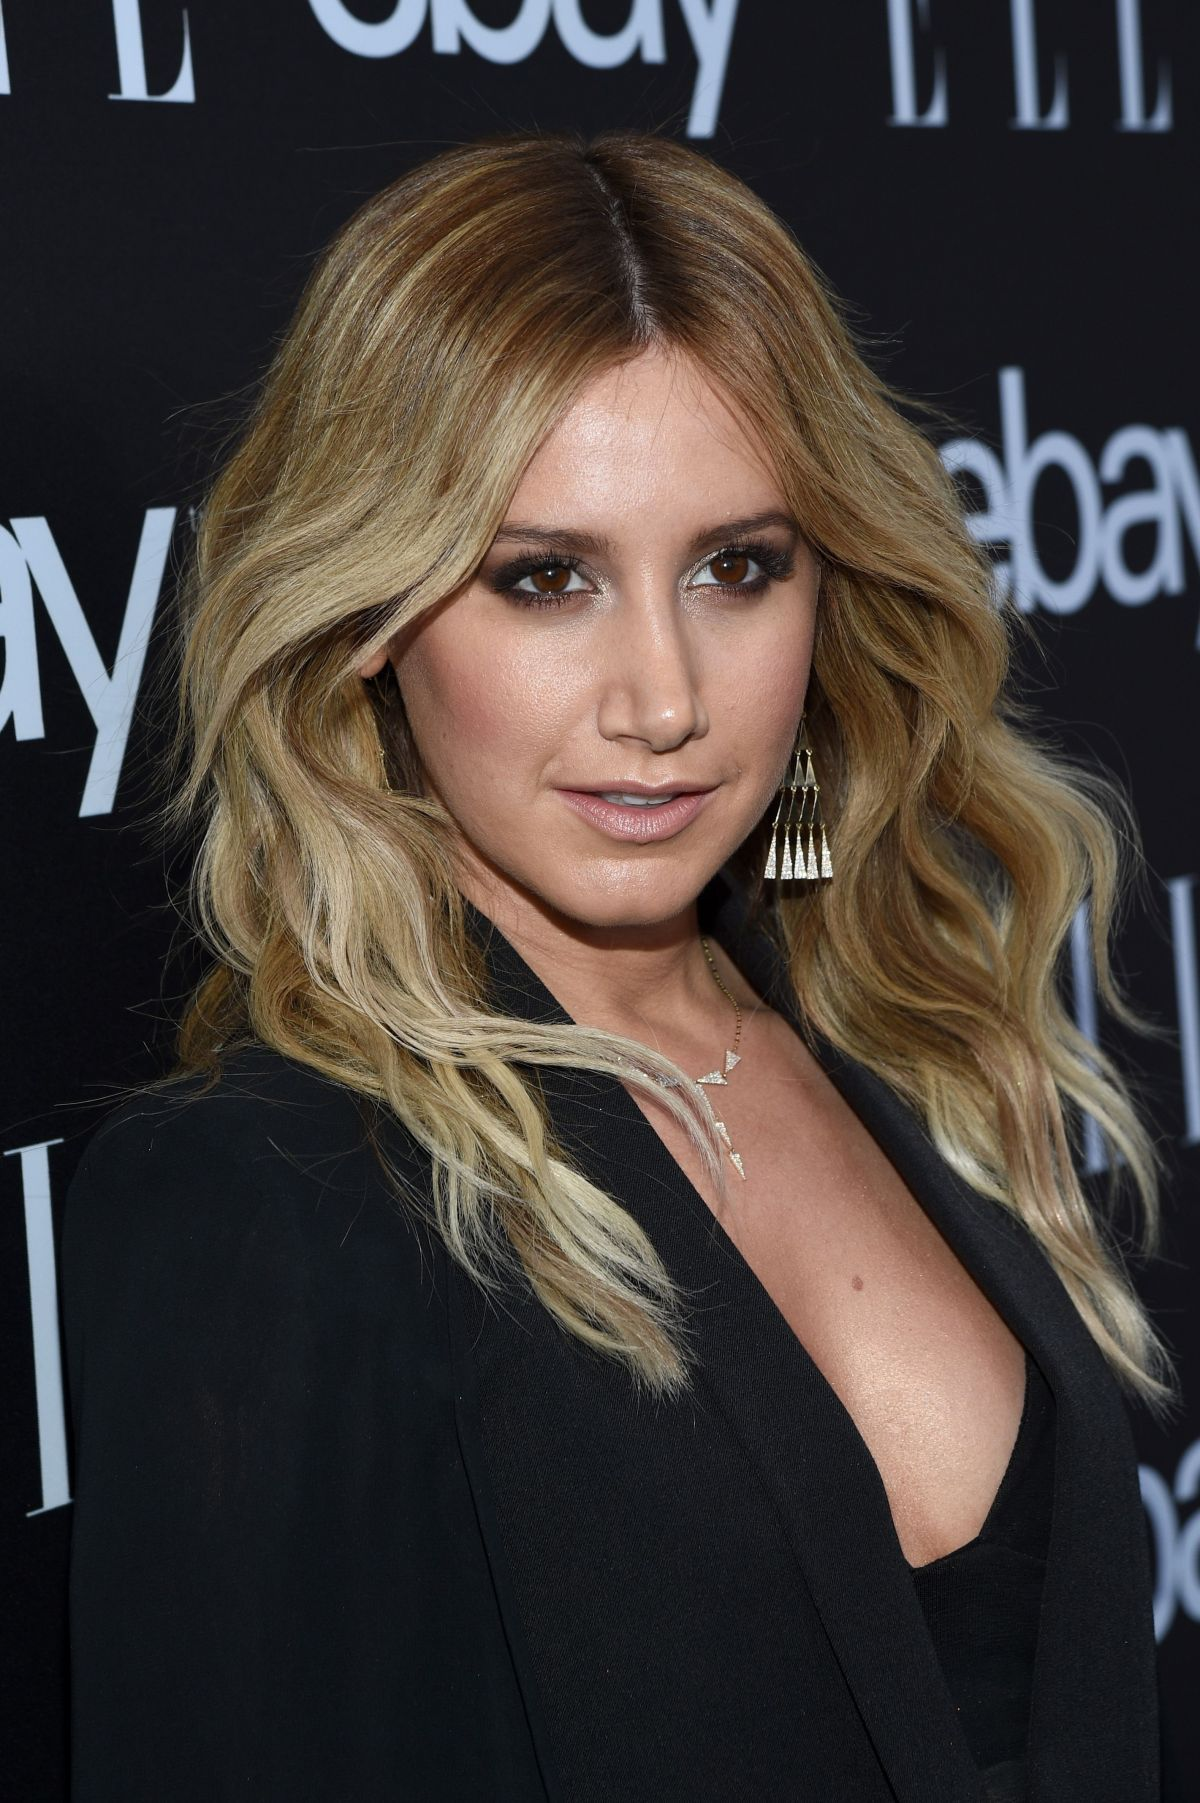 ASHLEY TISDALE at Elle Women in Music 2015 in Hollywood